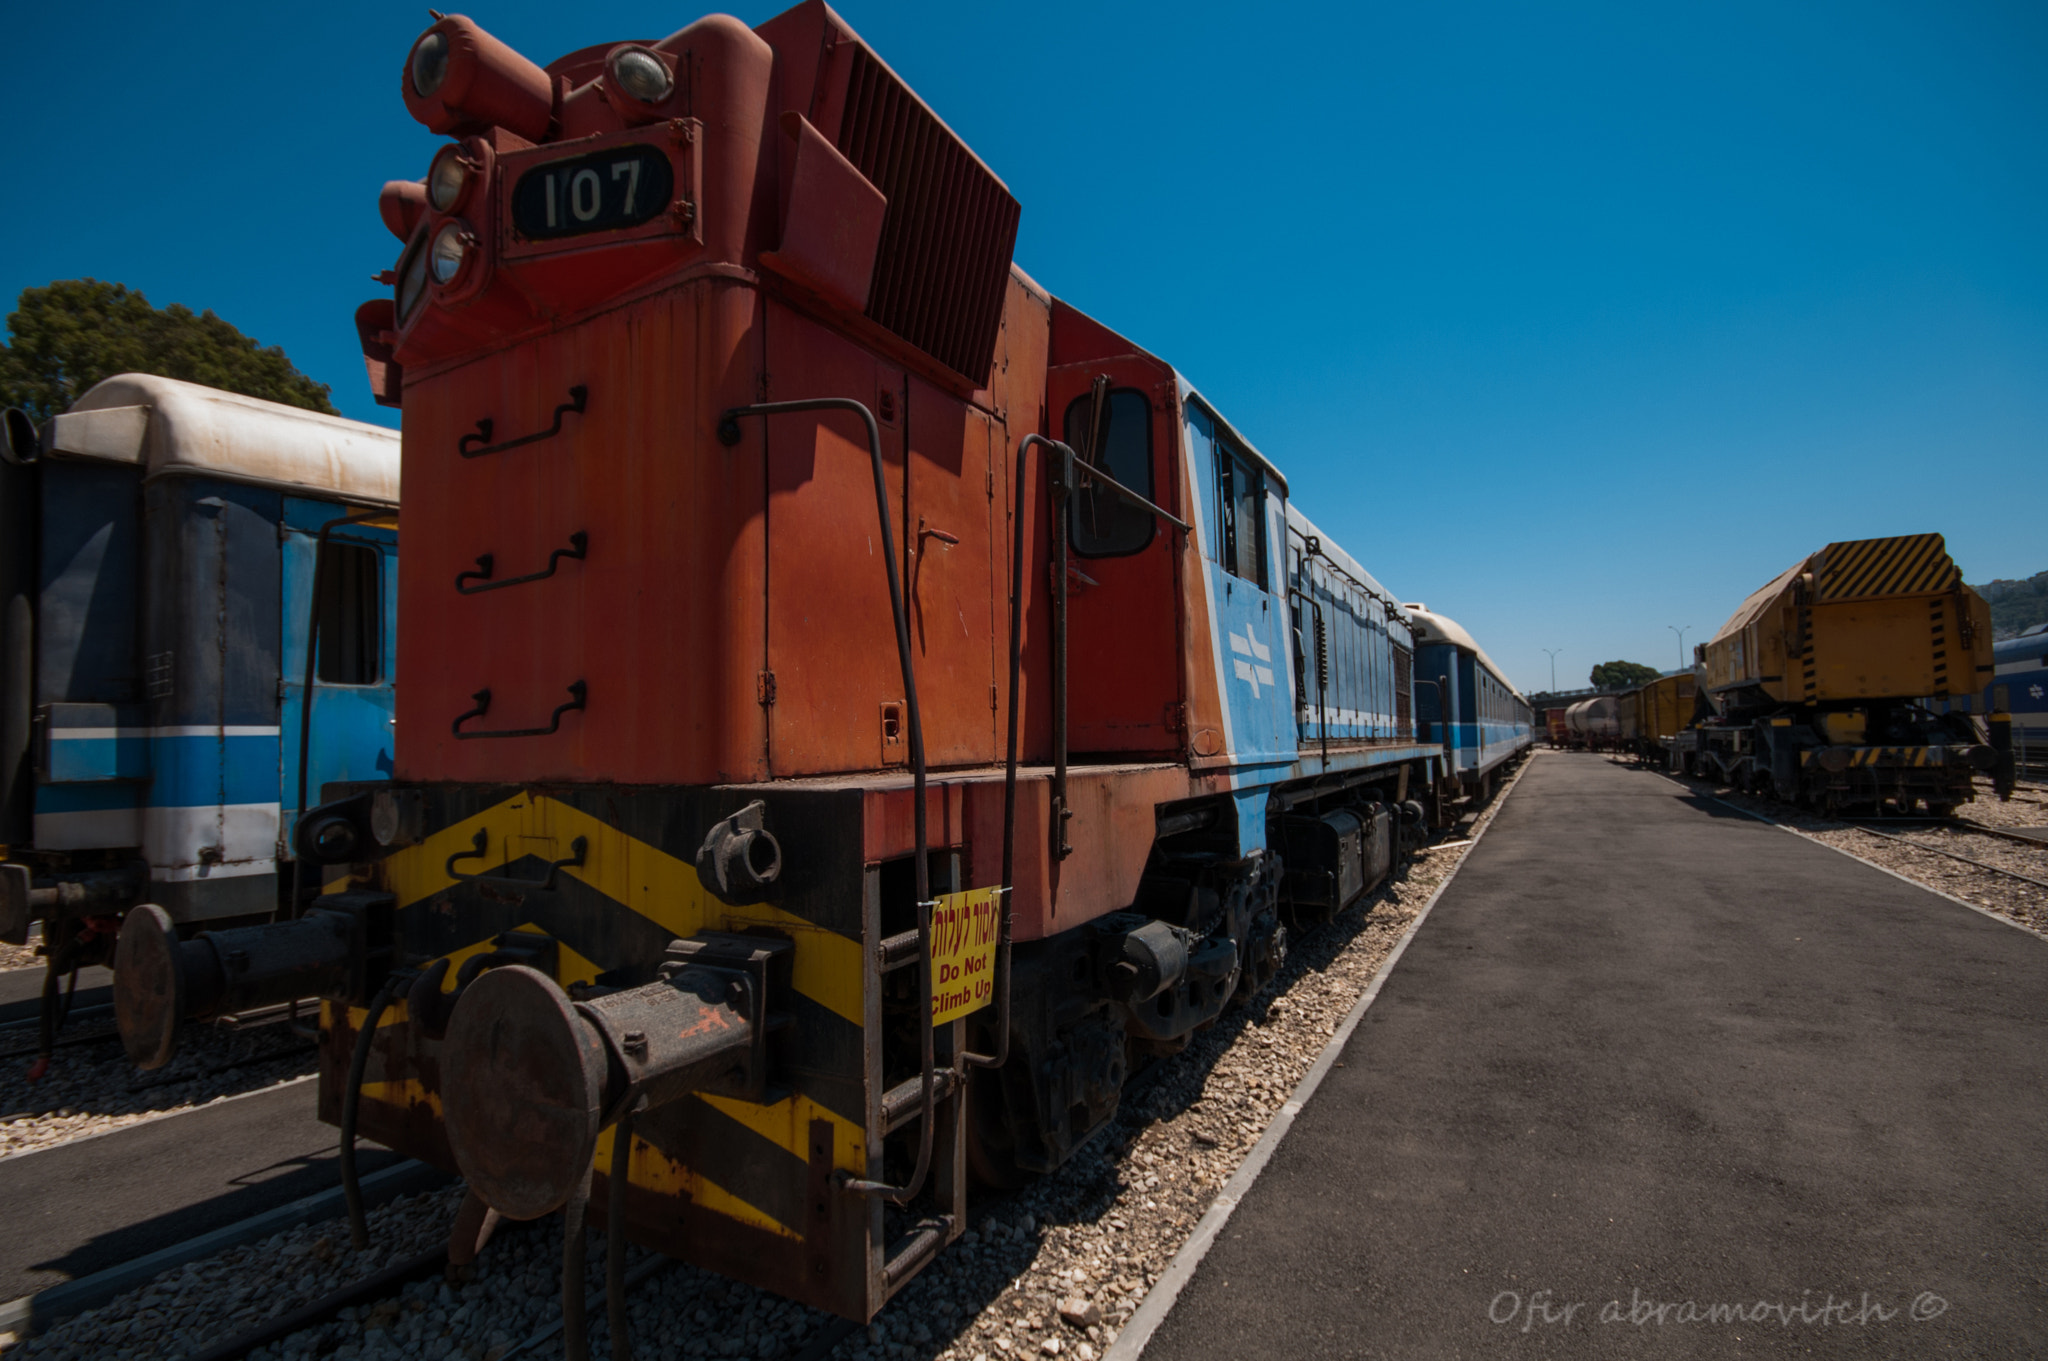 Photograph The Israel Railway museum #3 by Ofir Abramovitch on 500px